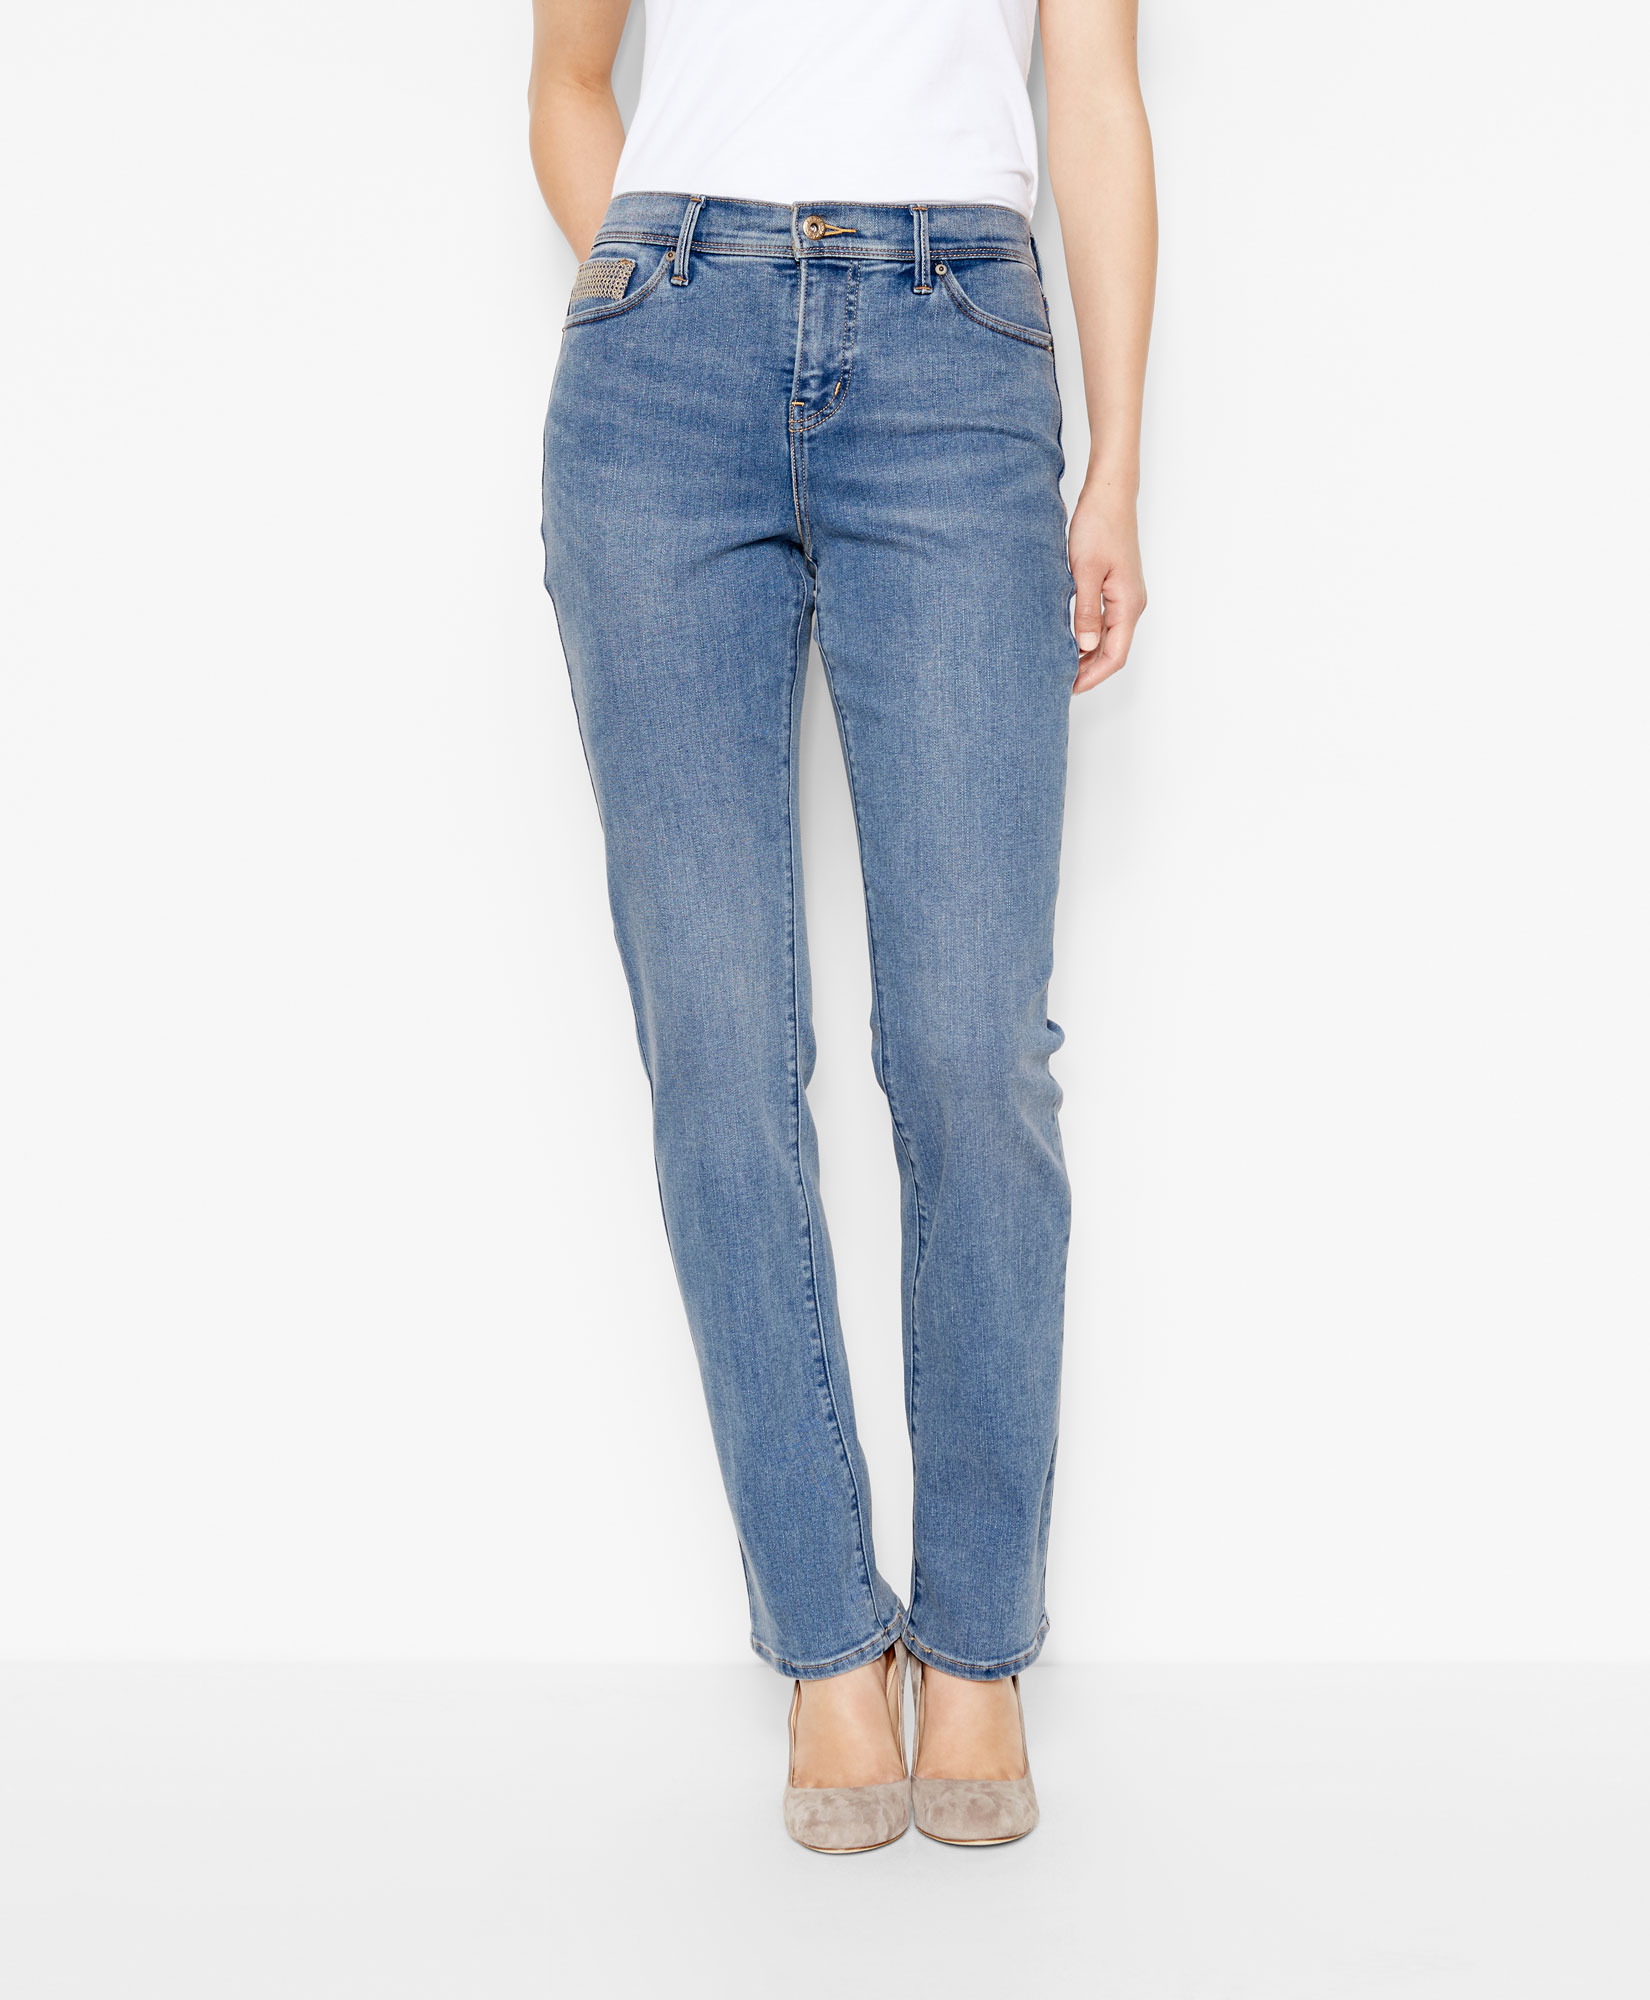 512™ perfectly slimming straight jeans